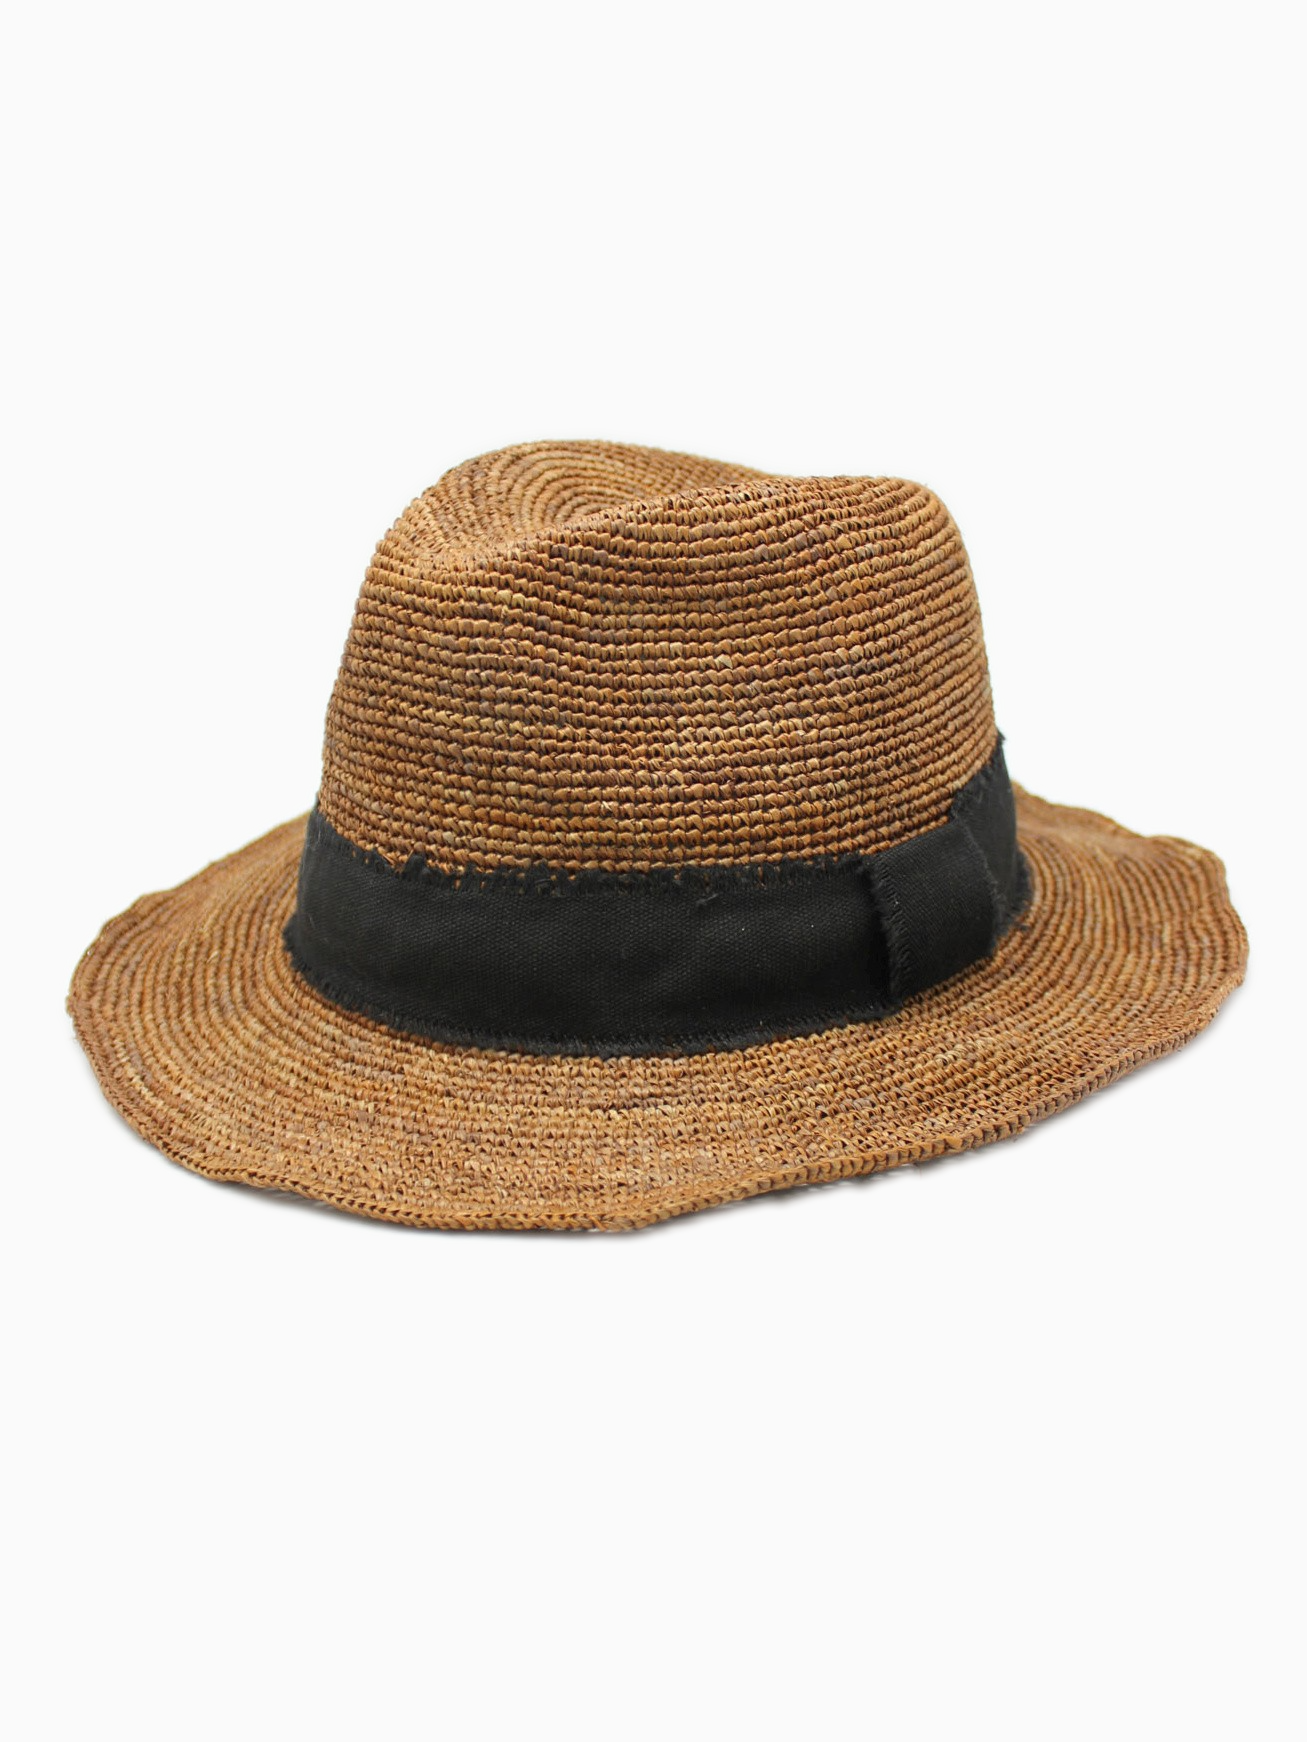 ALICE | Straw Summer Hat | Dark Camel